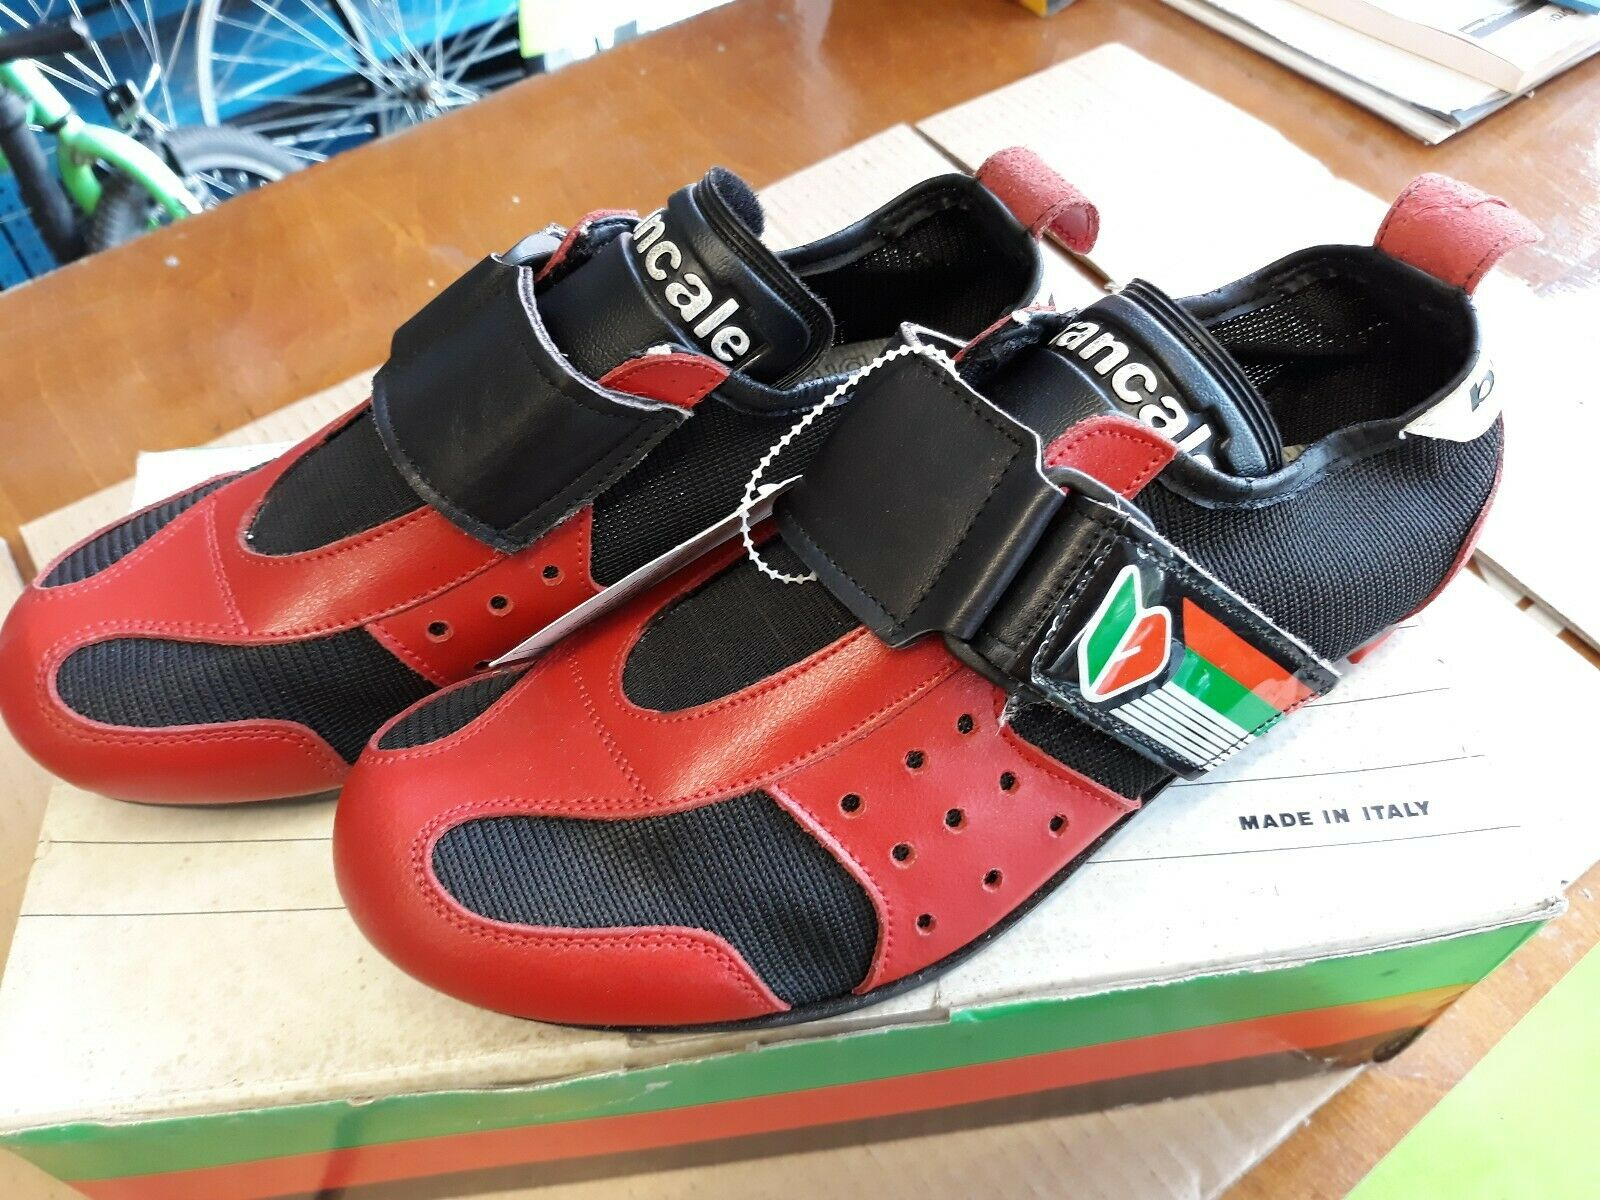 NOS Rare Vintage Brancale Road Cycling shoes Size 6.5 Classic Retro Eroica